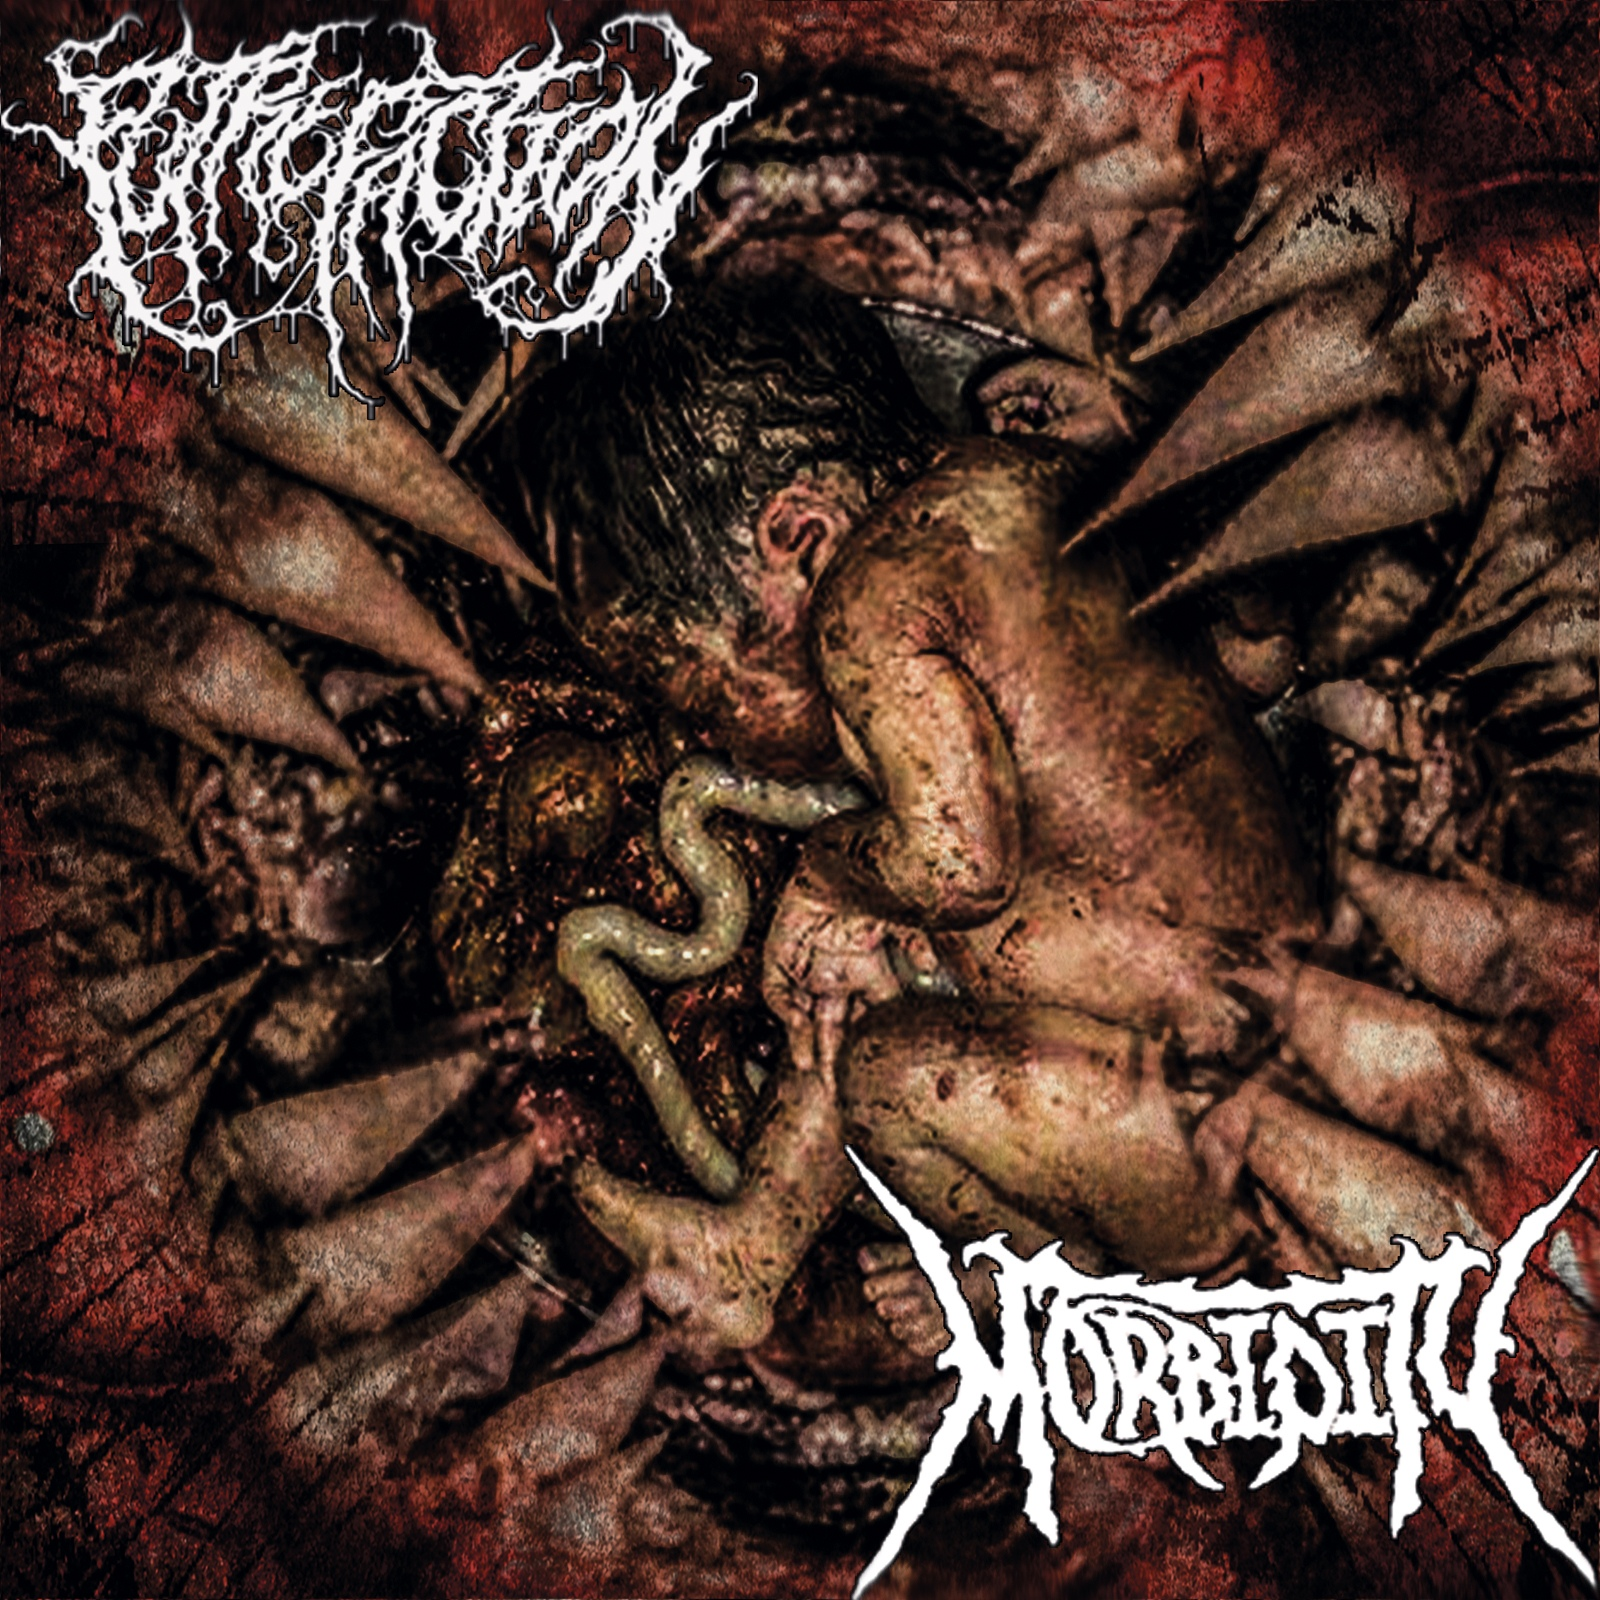 Morbidity, Putrefaction - Morbidity / Putrefaction [Split]